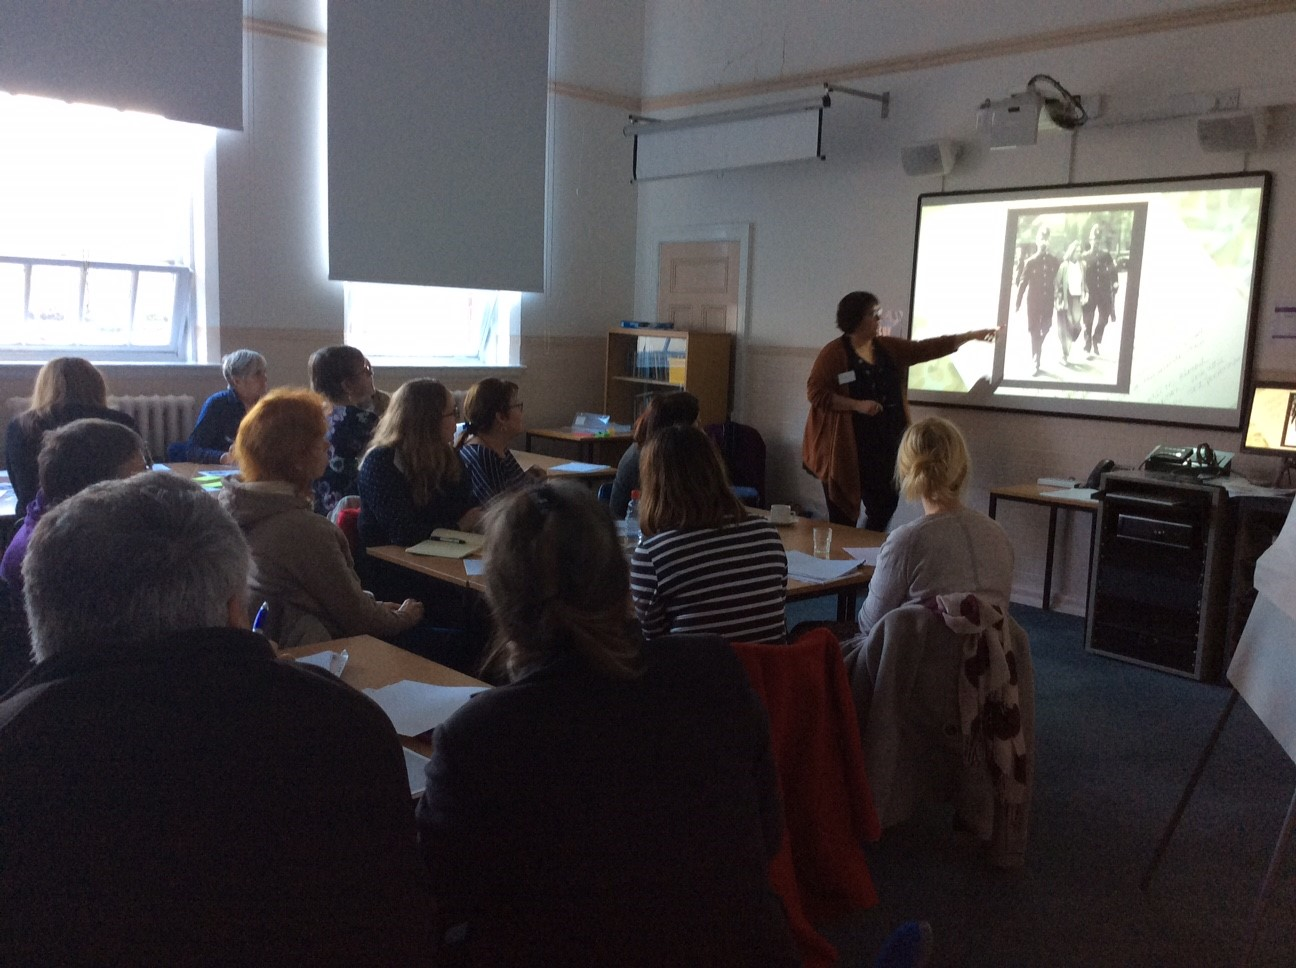 Joanne Selley and Angi Holden led a creative writing workshop on suffragette images